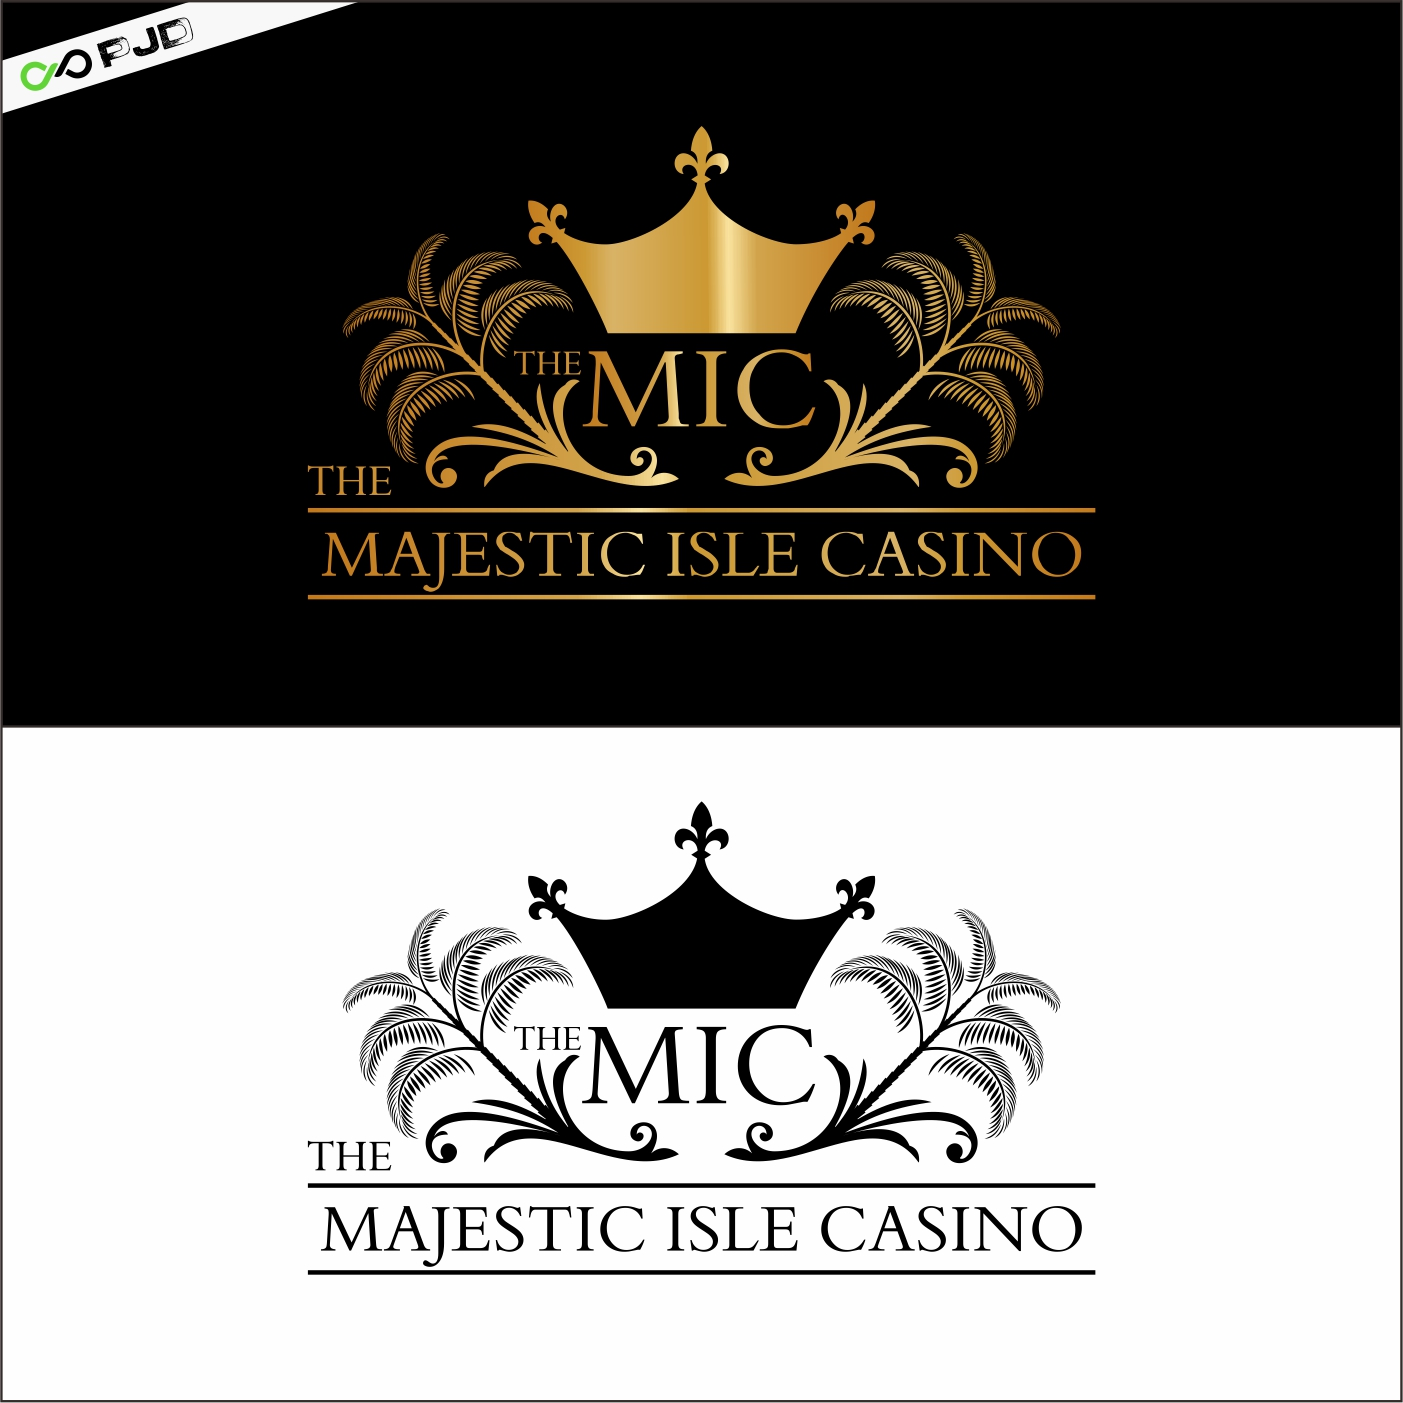 Logo Design by PJD - Entry No. 40 in the Logo Design Contest New Logo Design for The Majestic Isle Casino.